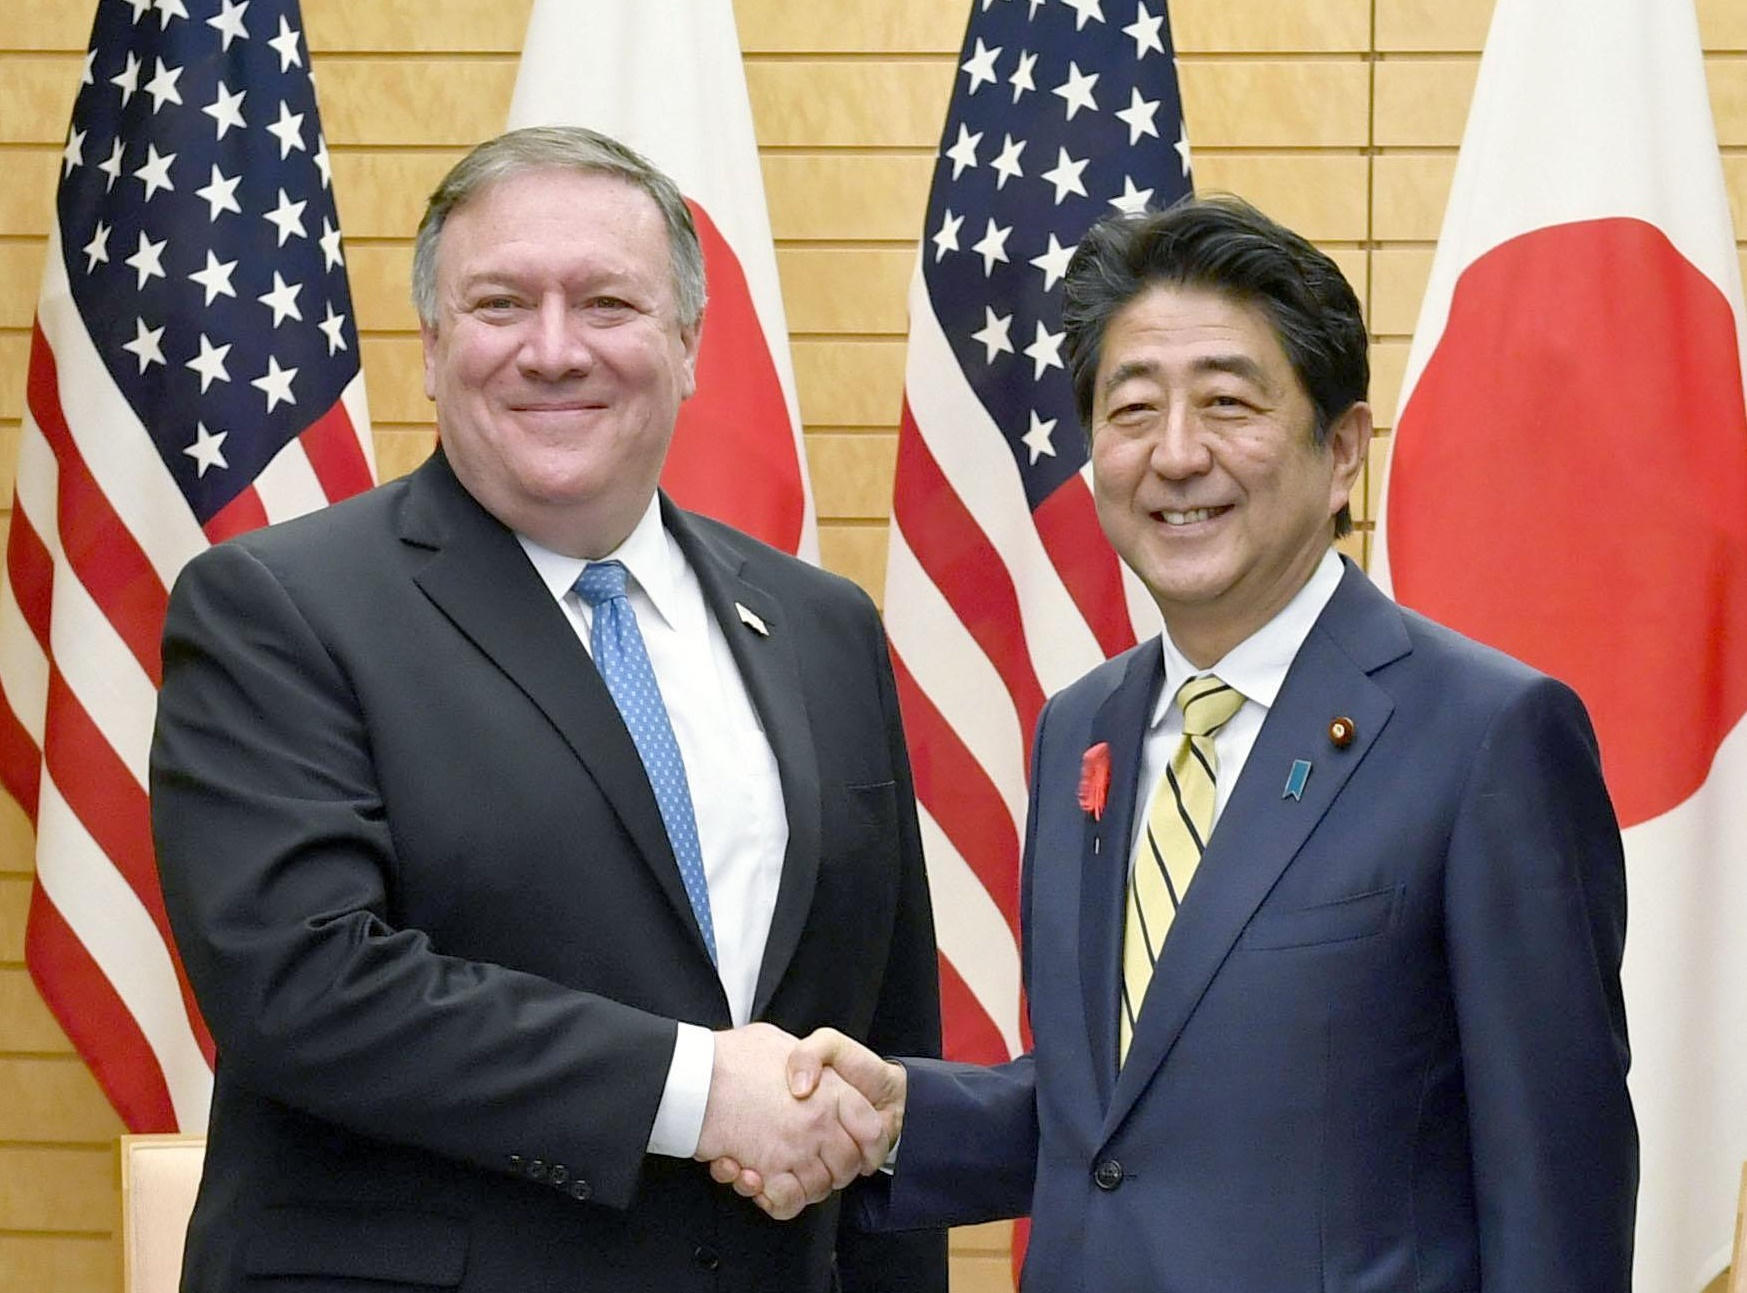 U.S. Secretary of State Mike Pompeo and Prime Minister Shinzo Abe shake hands  Saturday in Tokyo before starting a meeting to discuss North Korean nuclear and ballistic missile program issues. Pompeo will depart for Pyongyang on Sunday. | KYODO